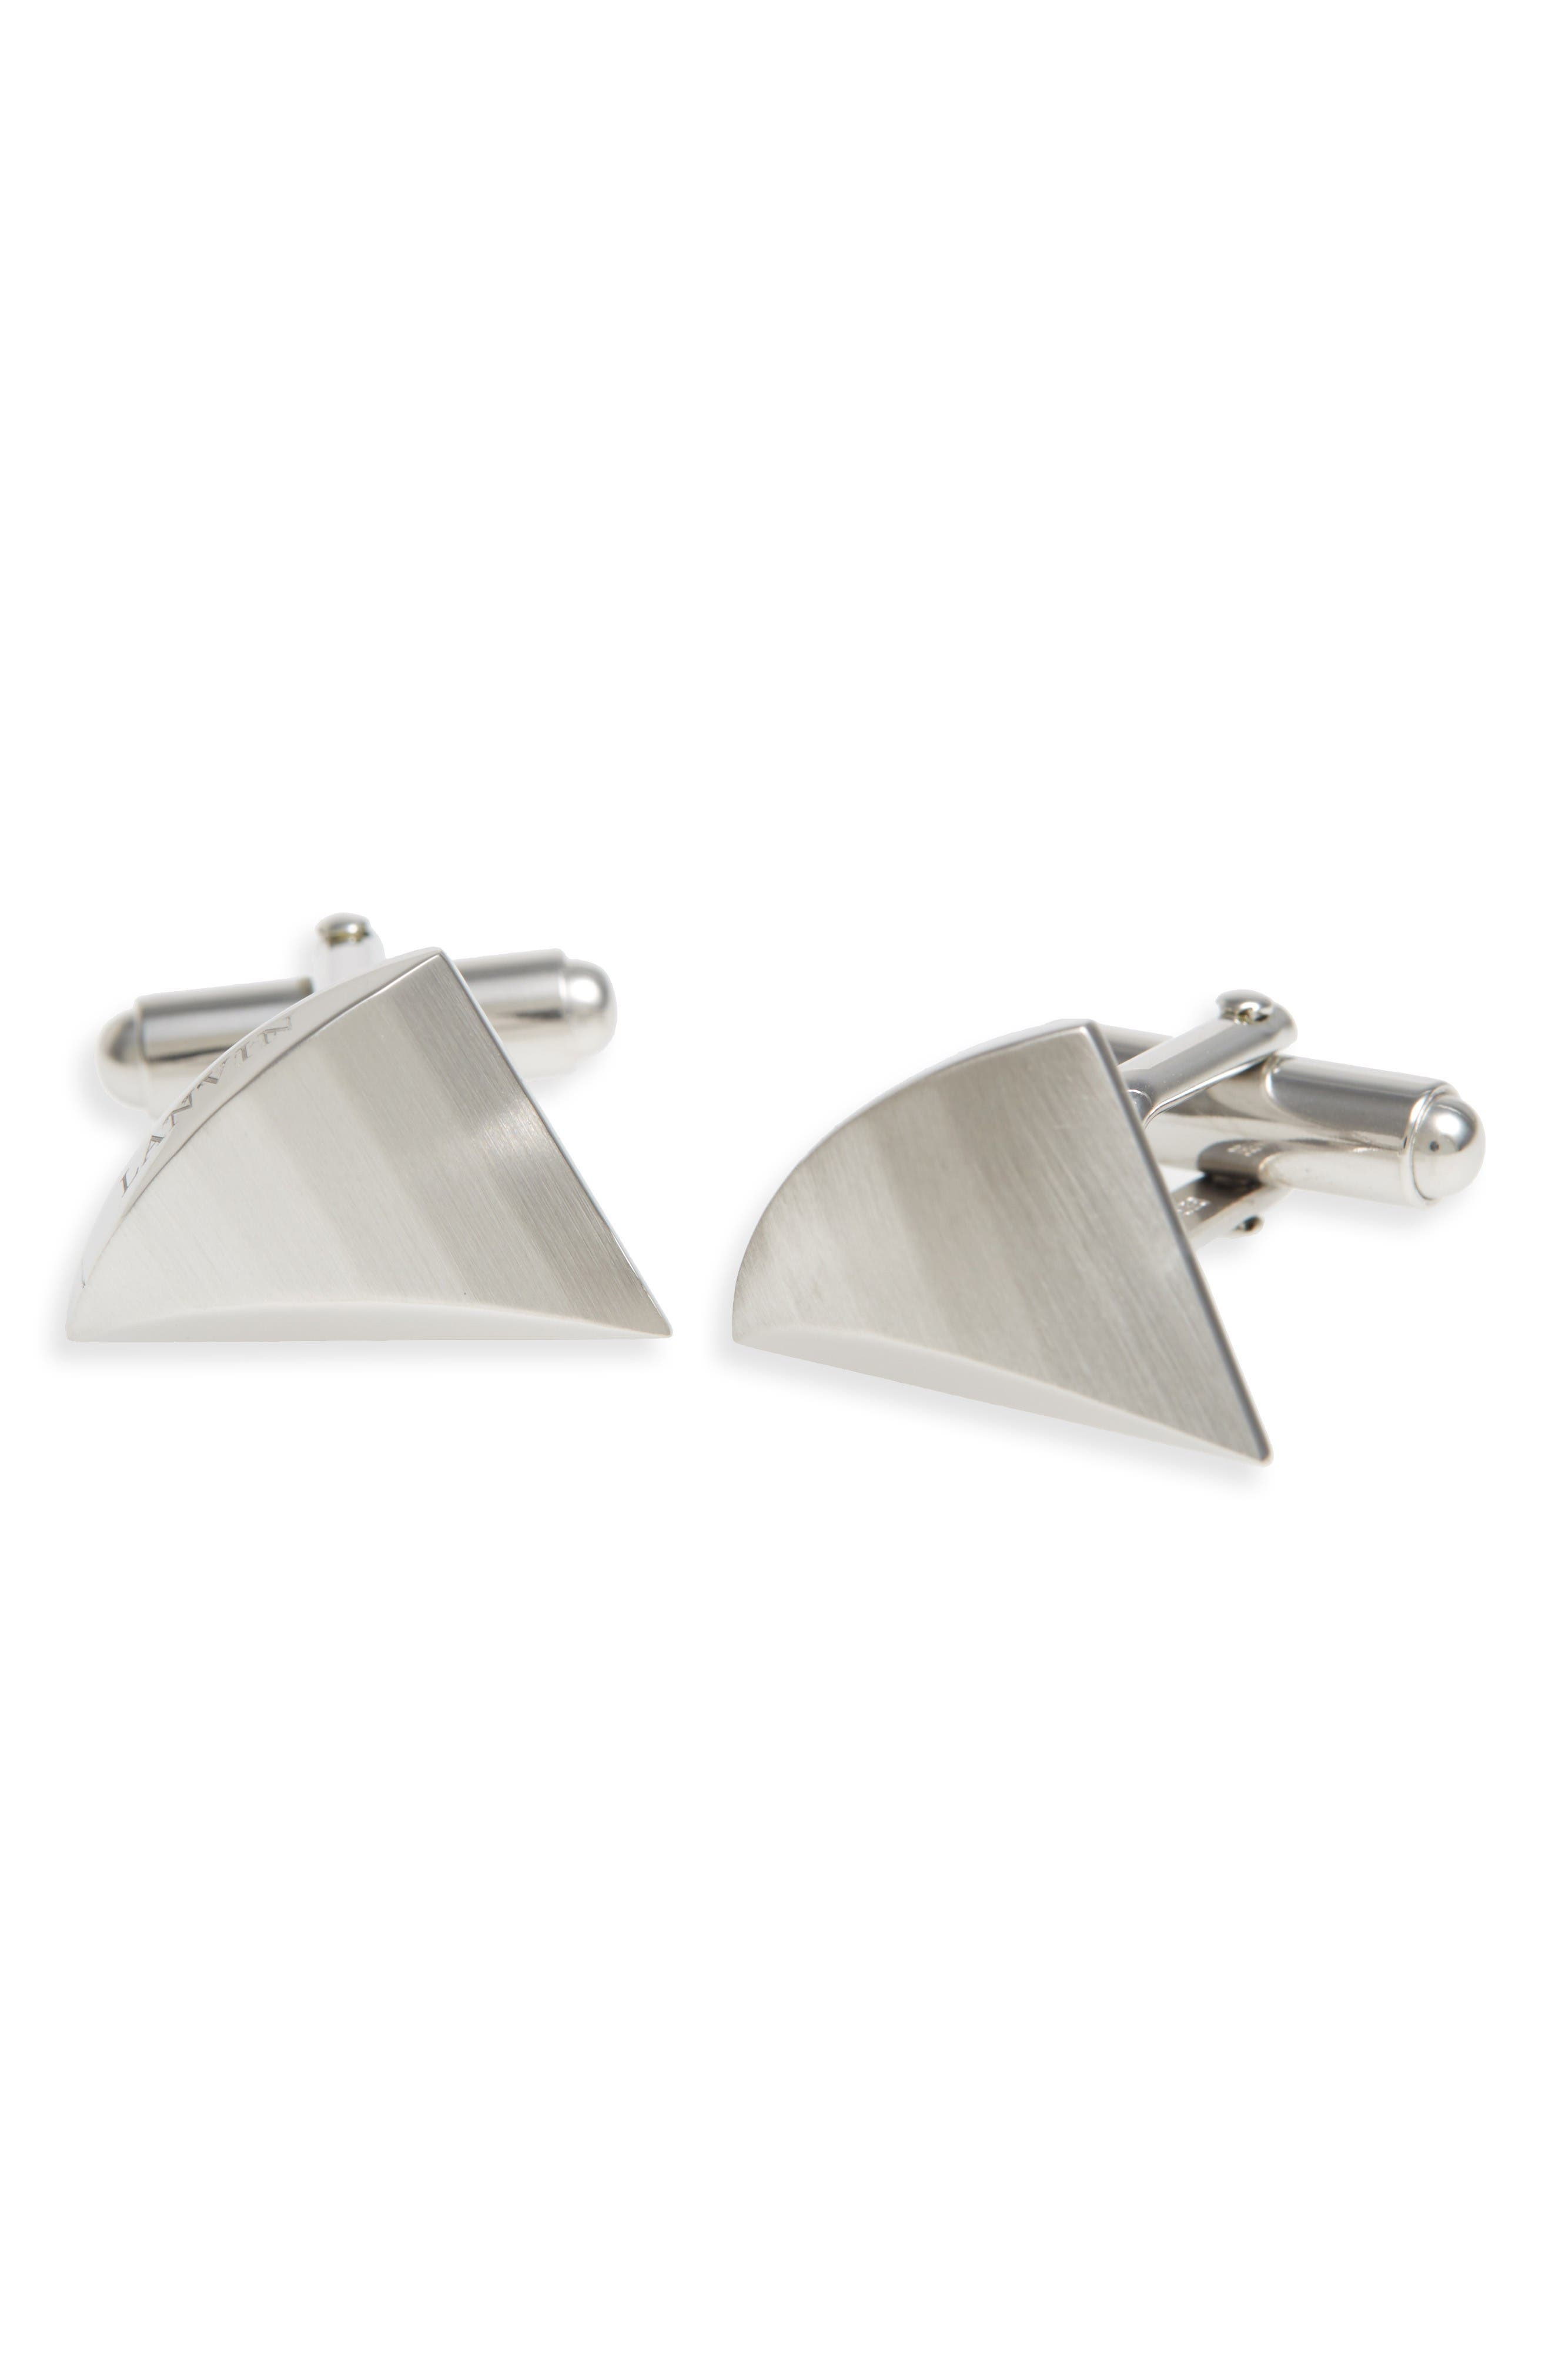 Main Image - Lanvin Faux Shark Tooth Cuff Links